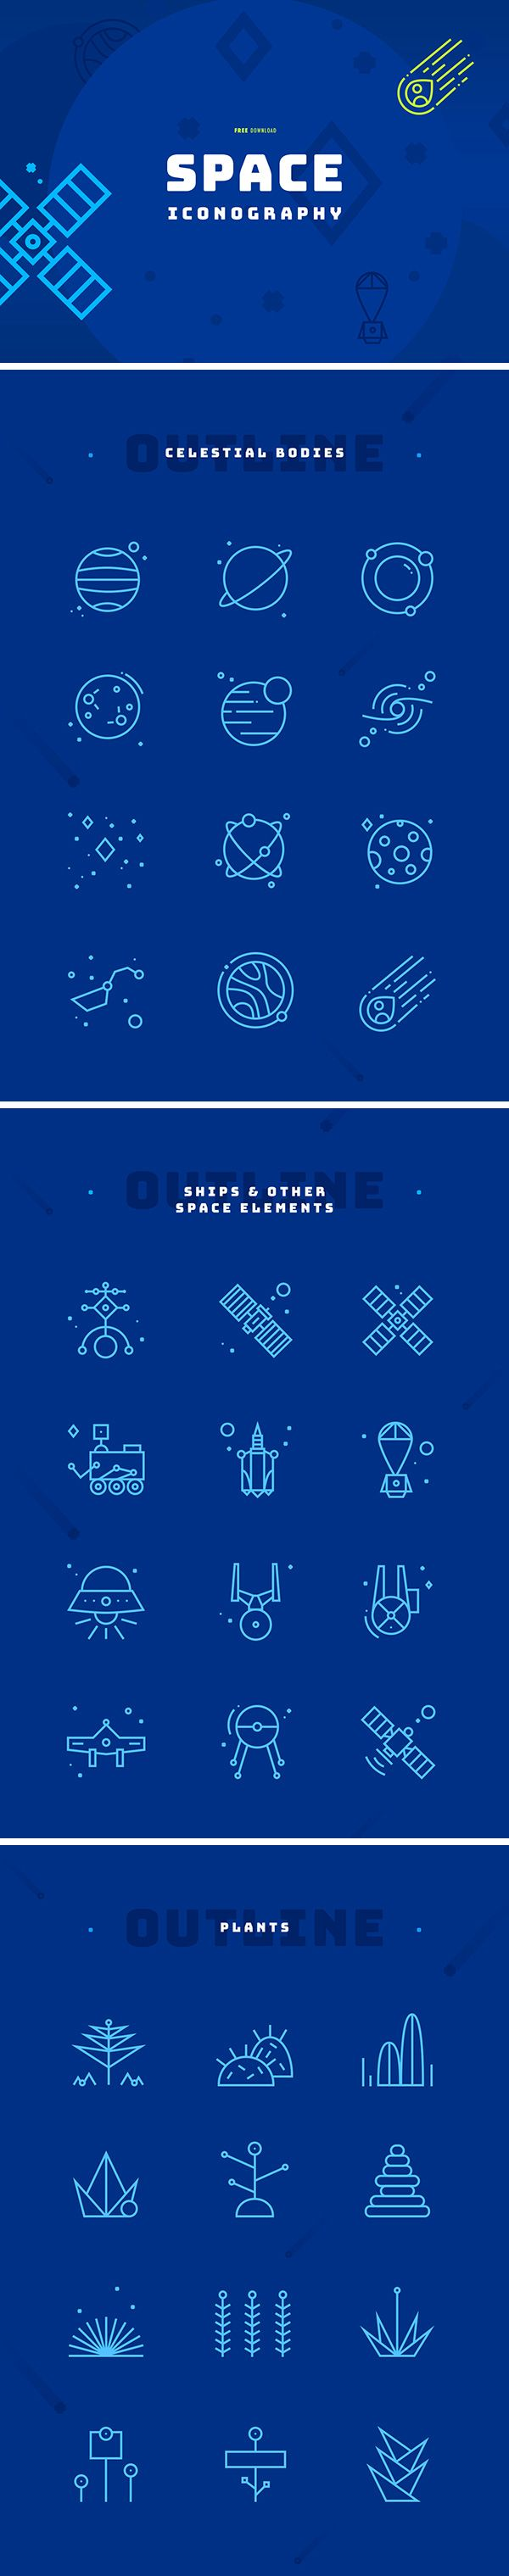 If you're looking for Space Iconography Free Icons then have a look at this icons set. This is collection of 36 neatly designed icons inspired by celestial bodies and other various space elements. Download it for free and add to your freebie collection right now!